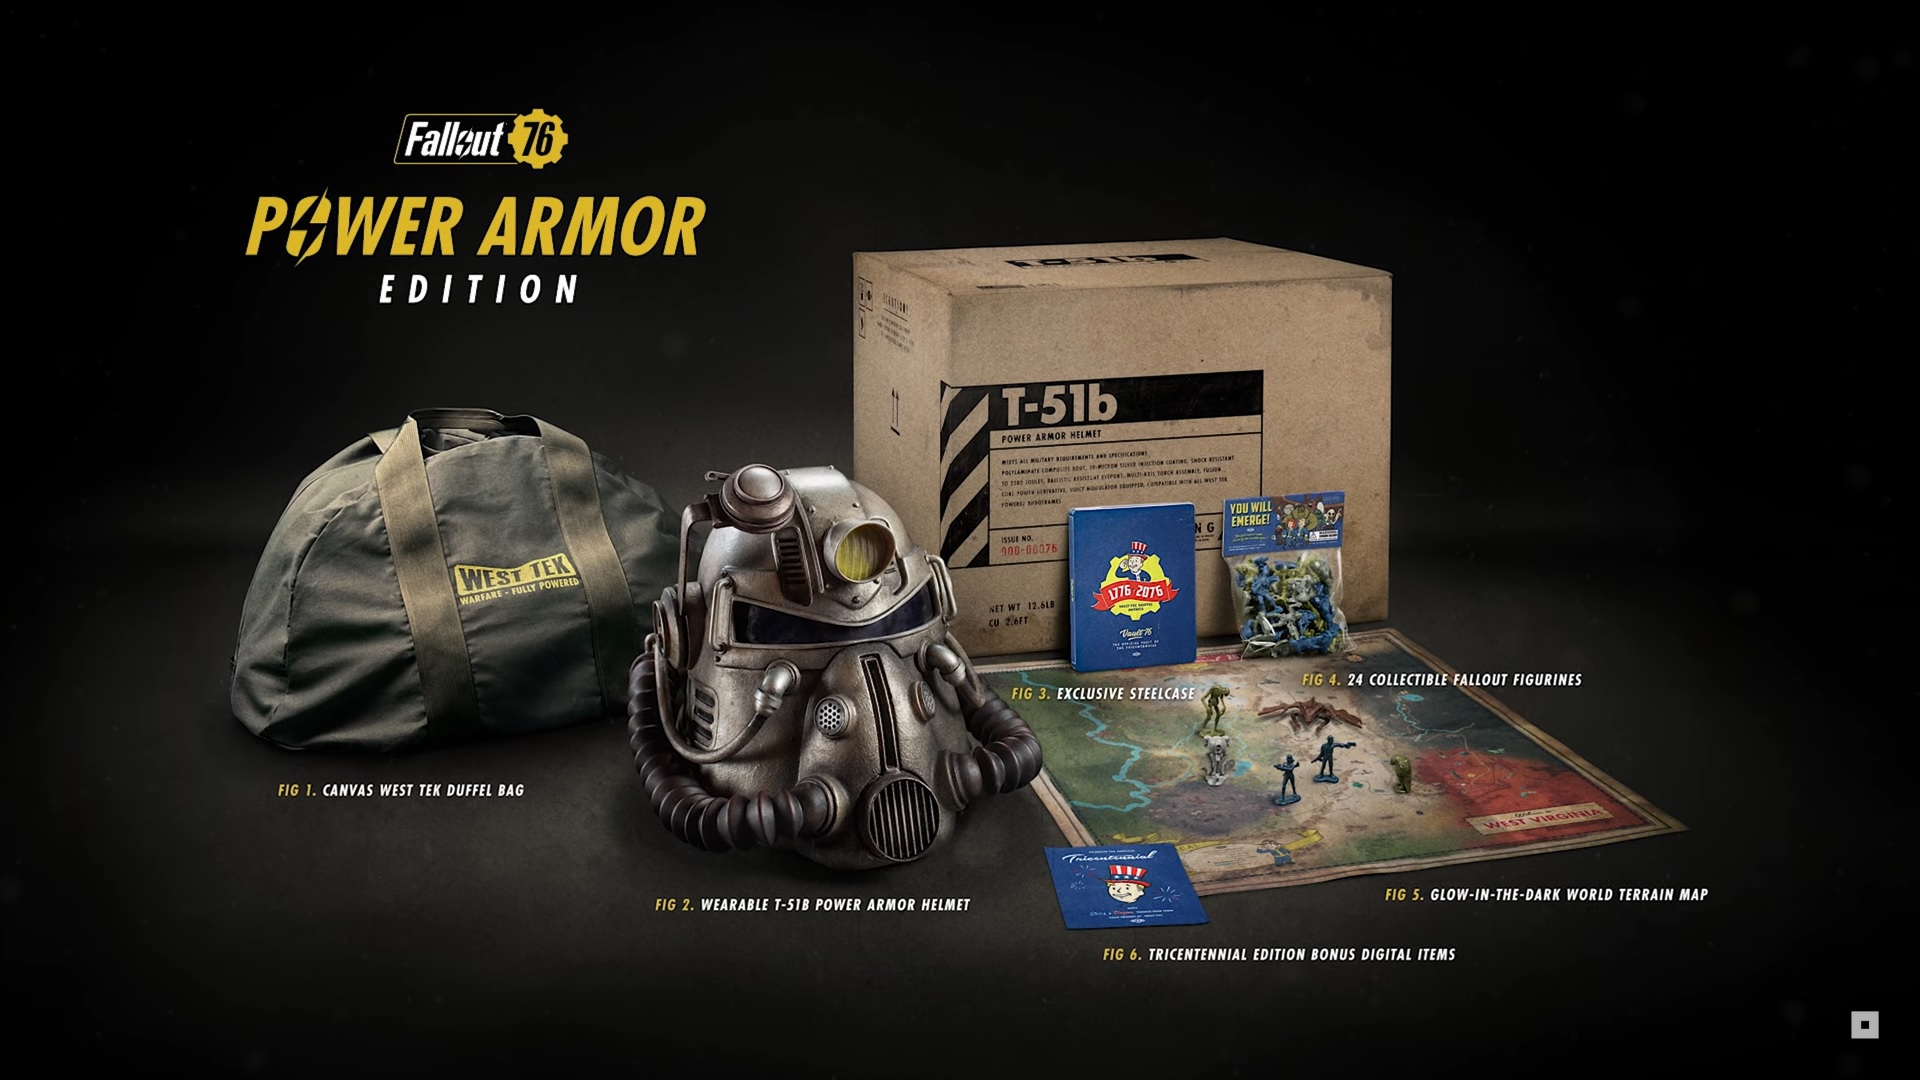 Fallout 76's collectors edition includes a wearable helmet